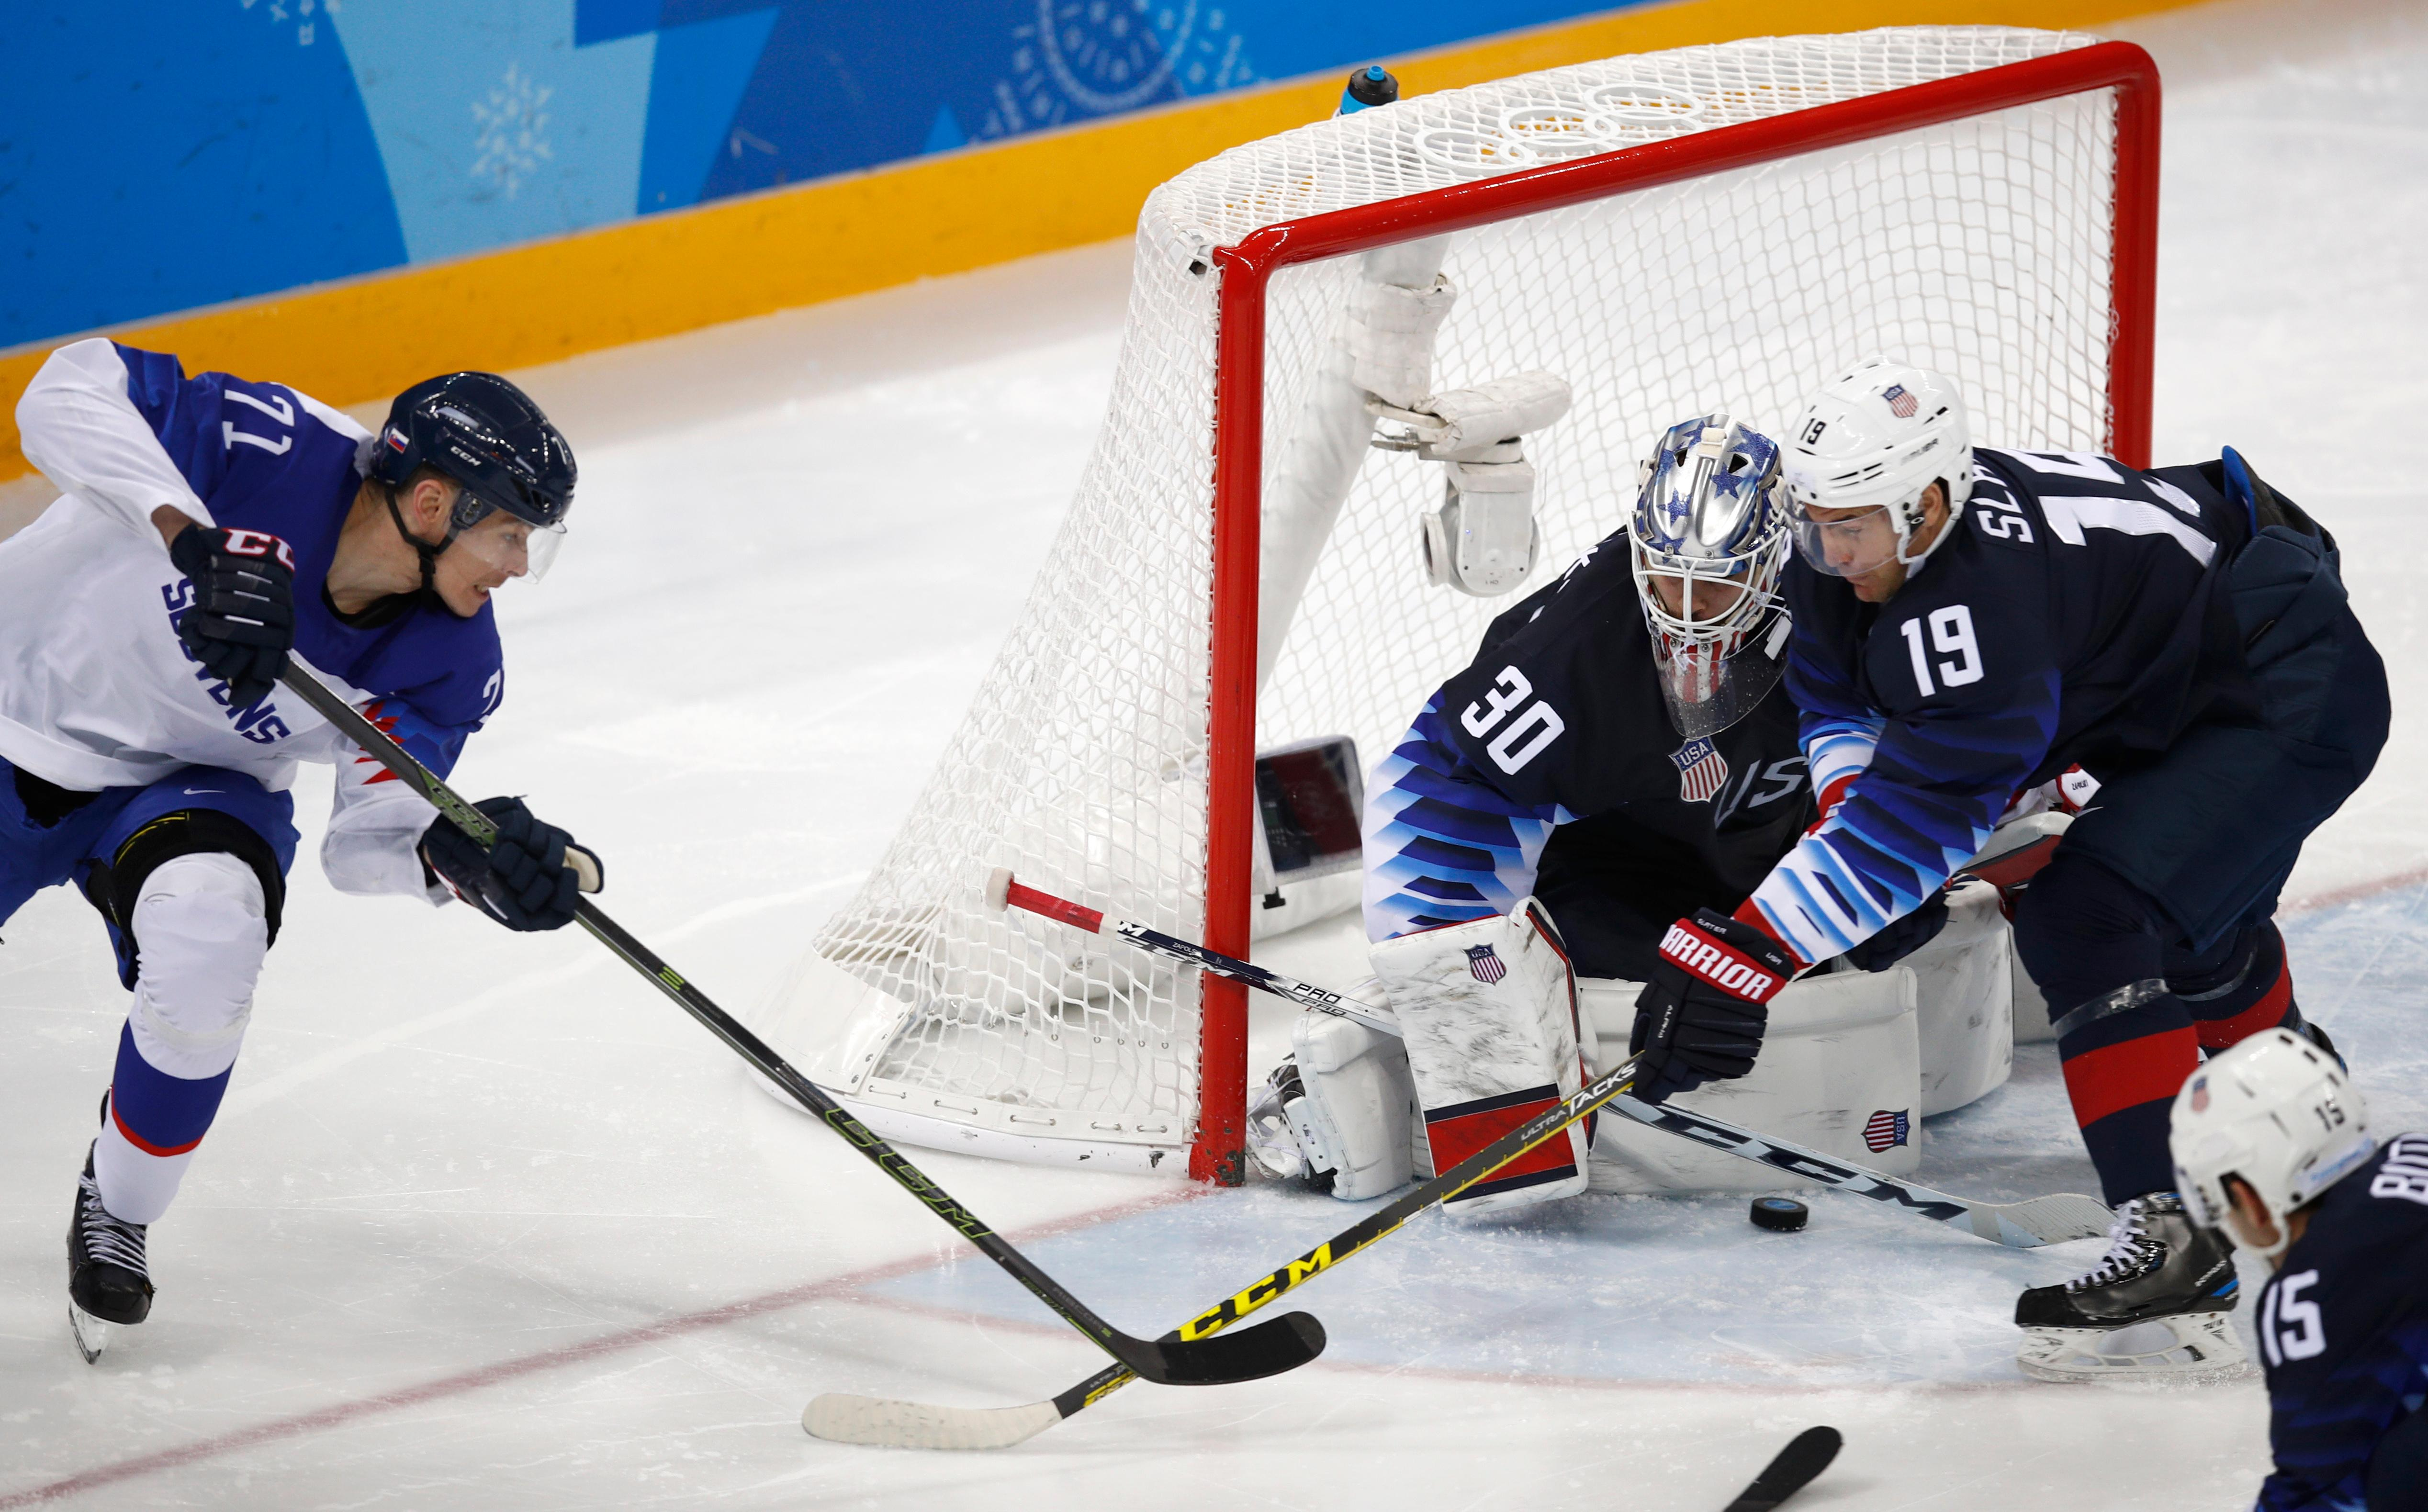 The Romney Ryan Game Plan >> US beats Slovakia 5-1, will play Czechs in Olympic quarters | WOAI